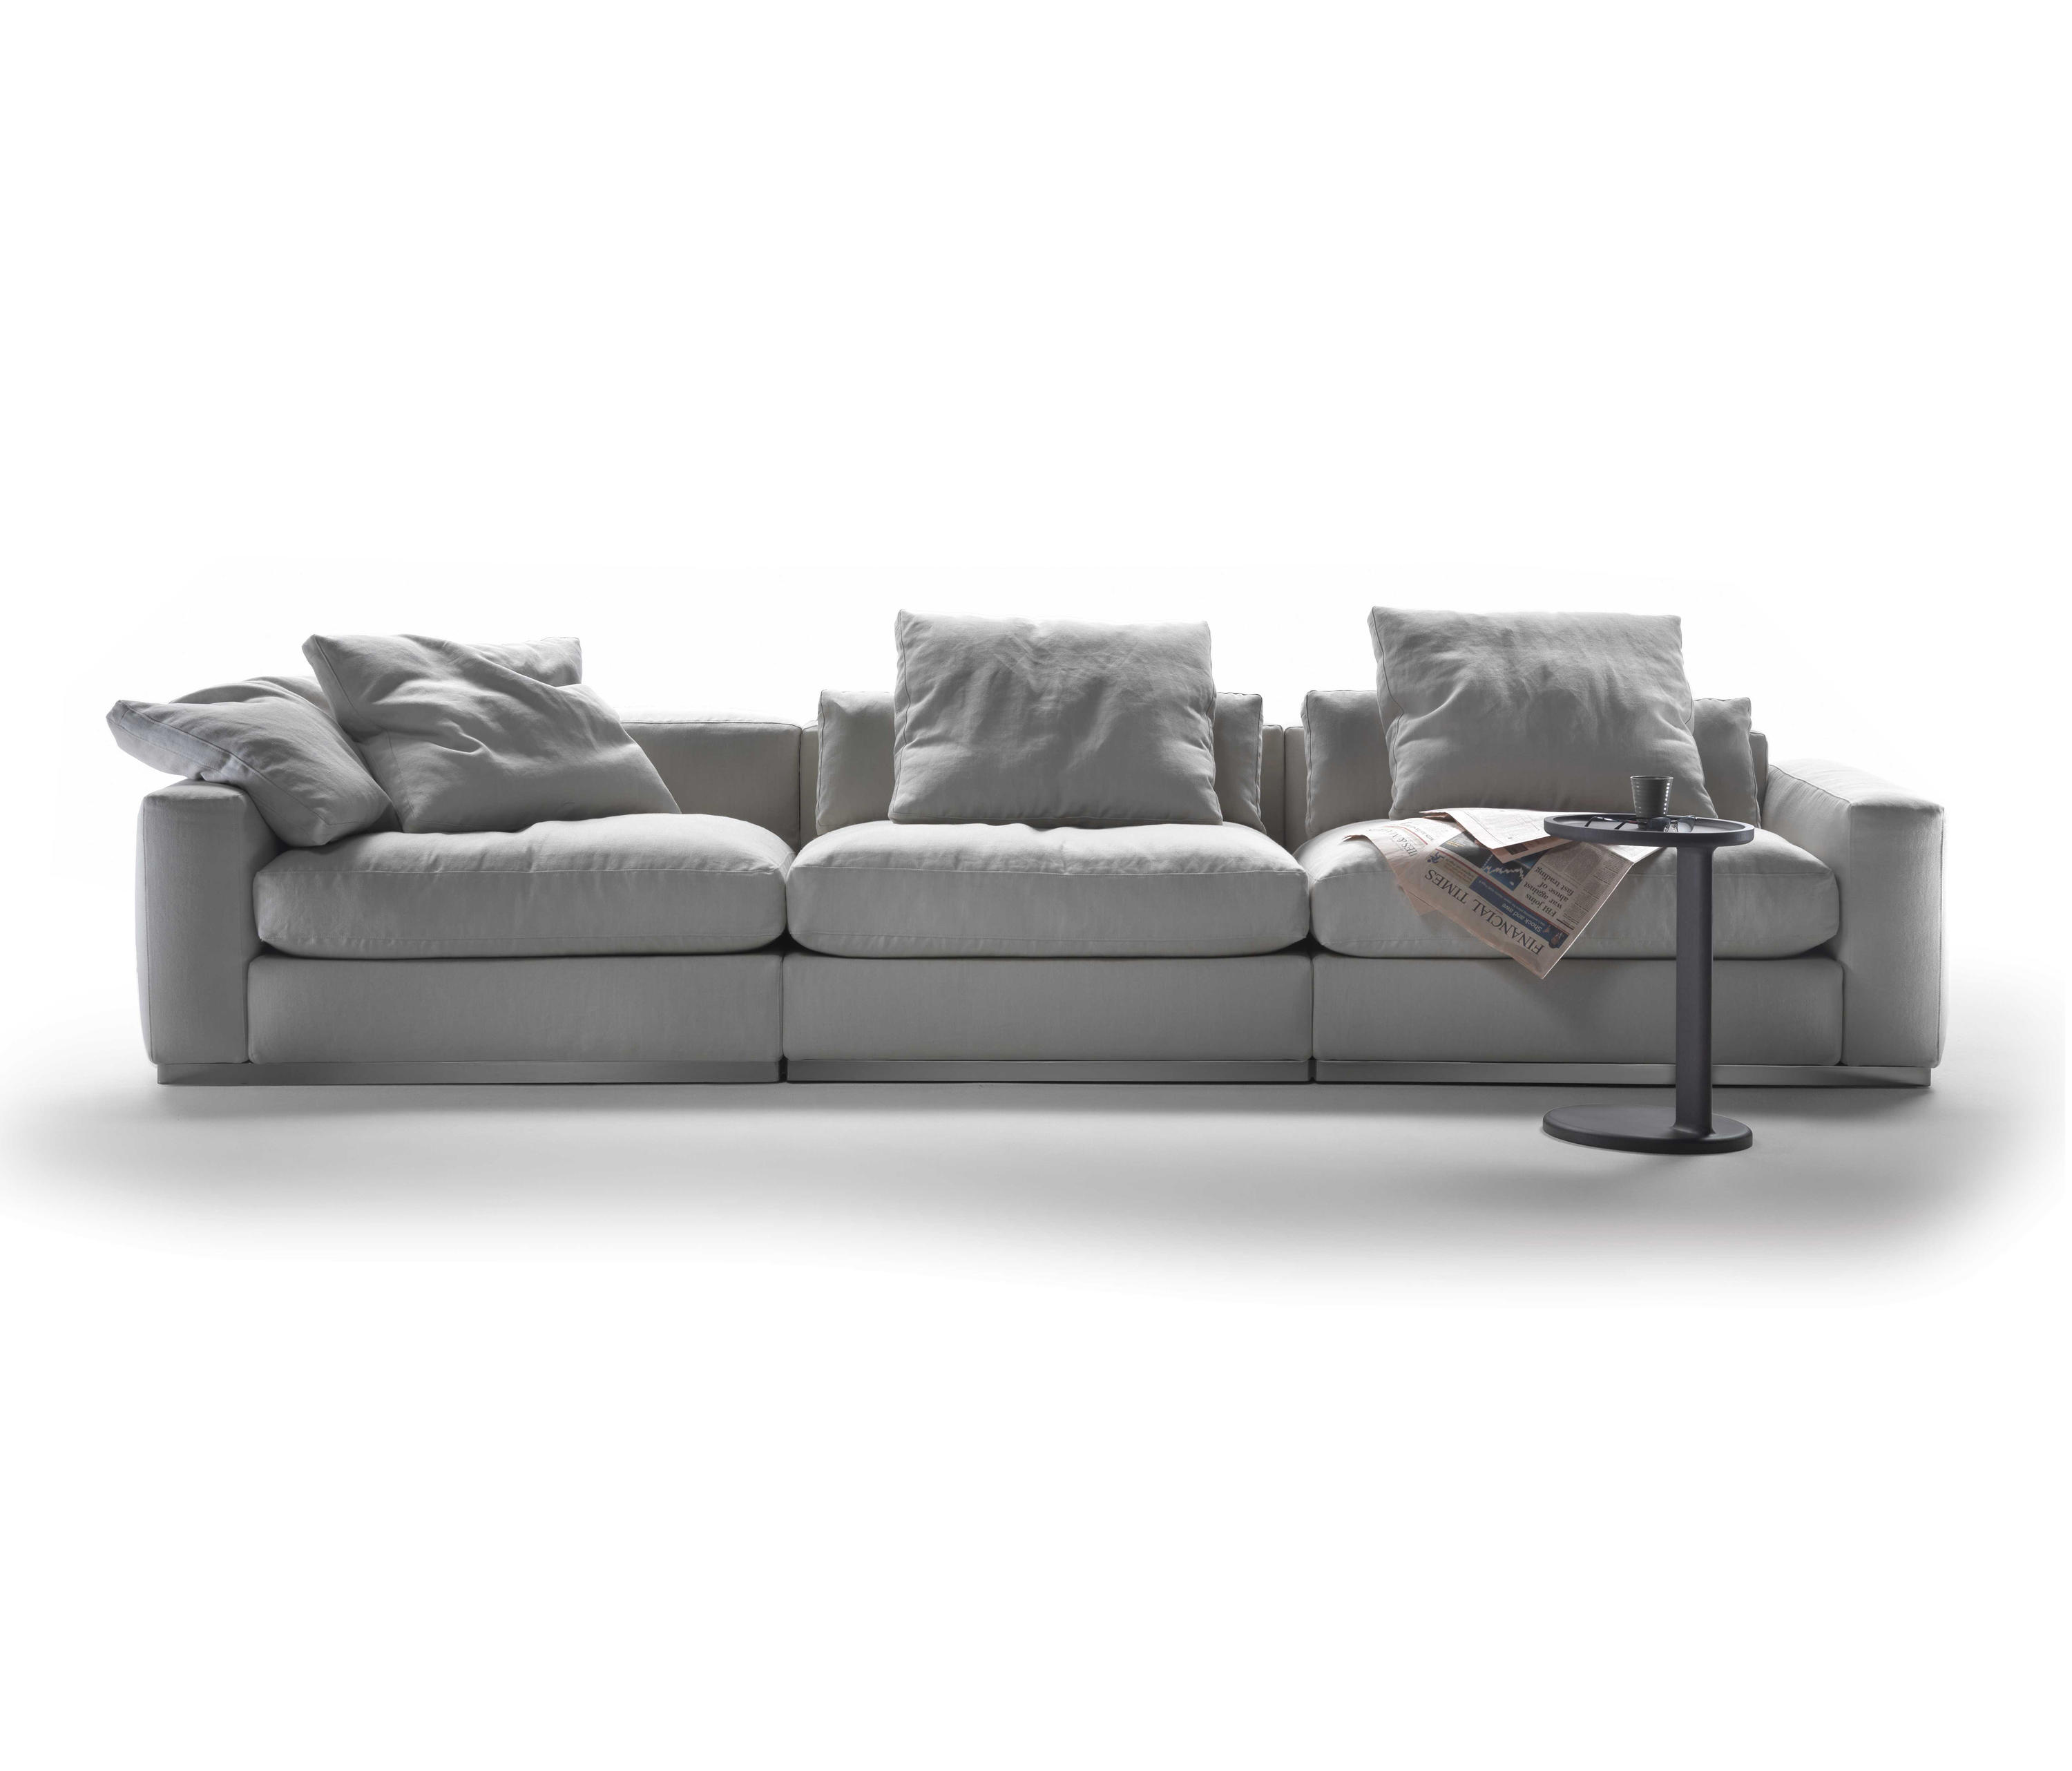 Astounding Beauty Sofas From Flexform Architonic Pdpeps Interior Chair Design Pdpepsorg